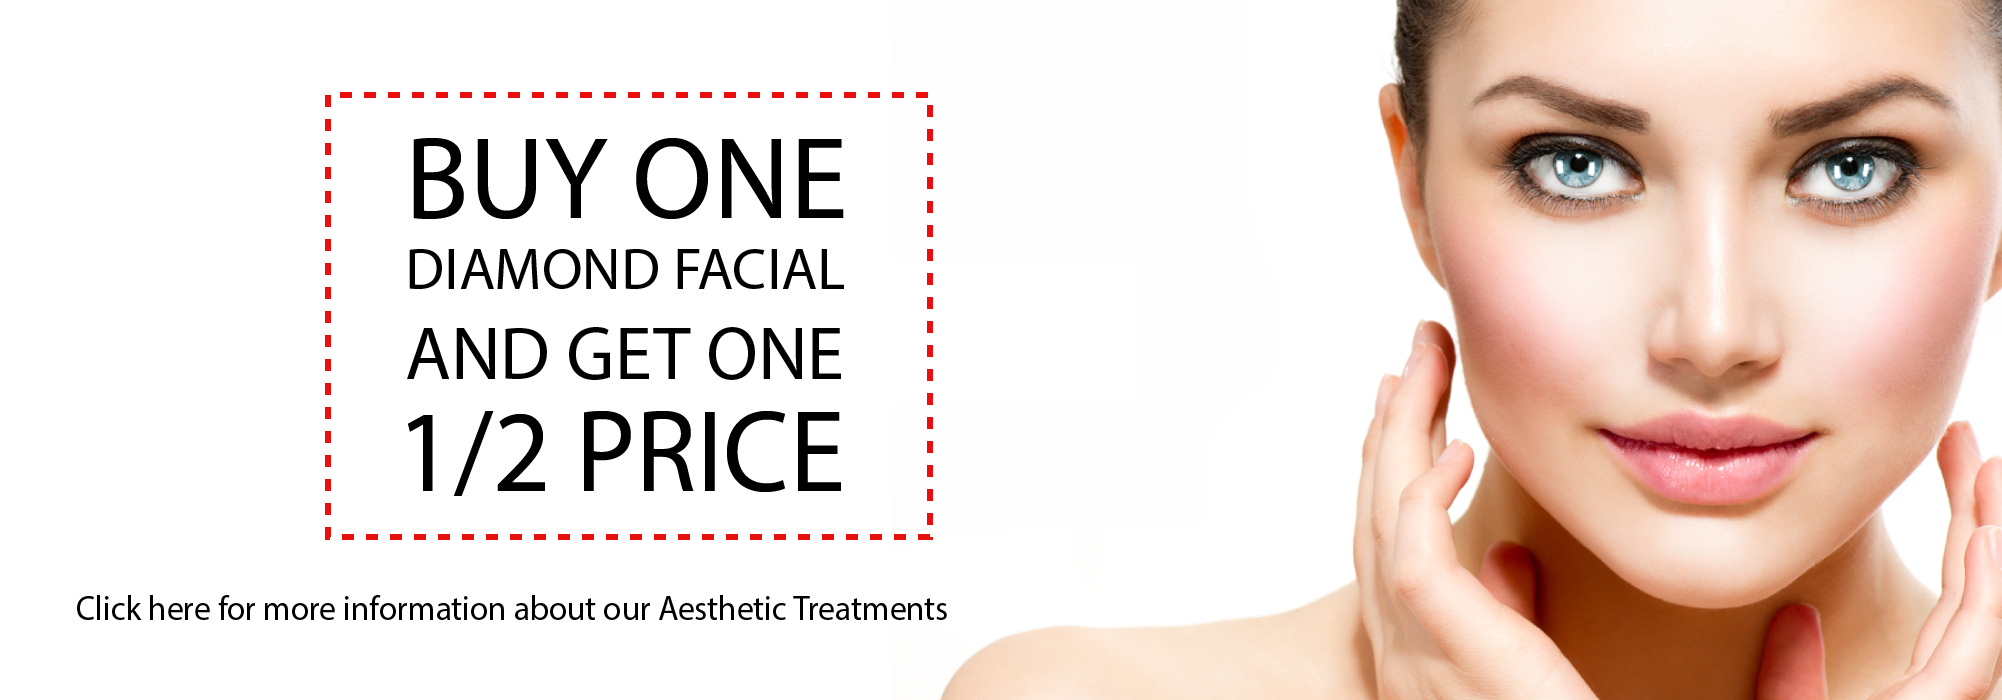 Acne Pigmentation Anti wrinkle treatments - supreme skin clinic